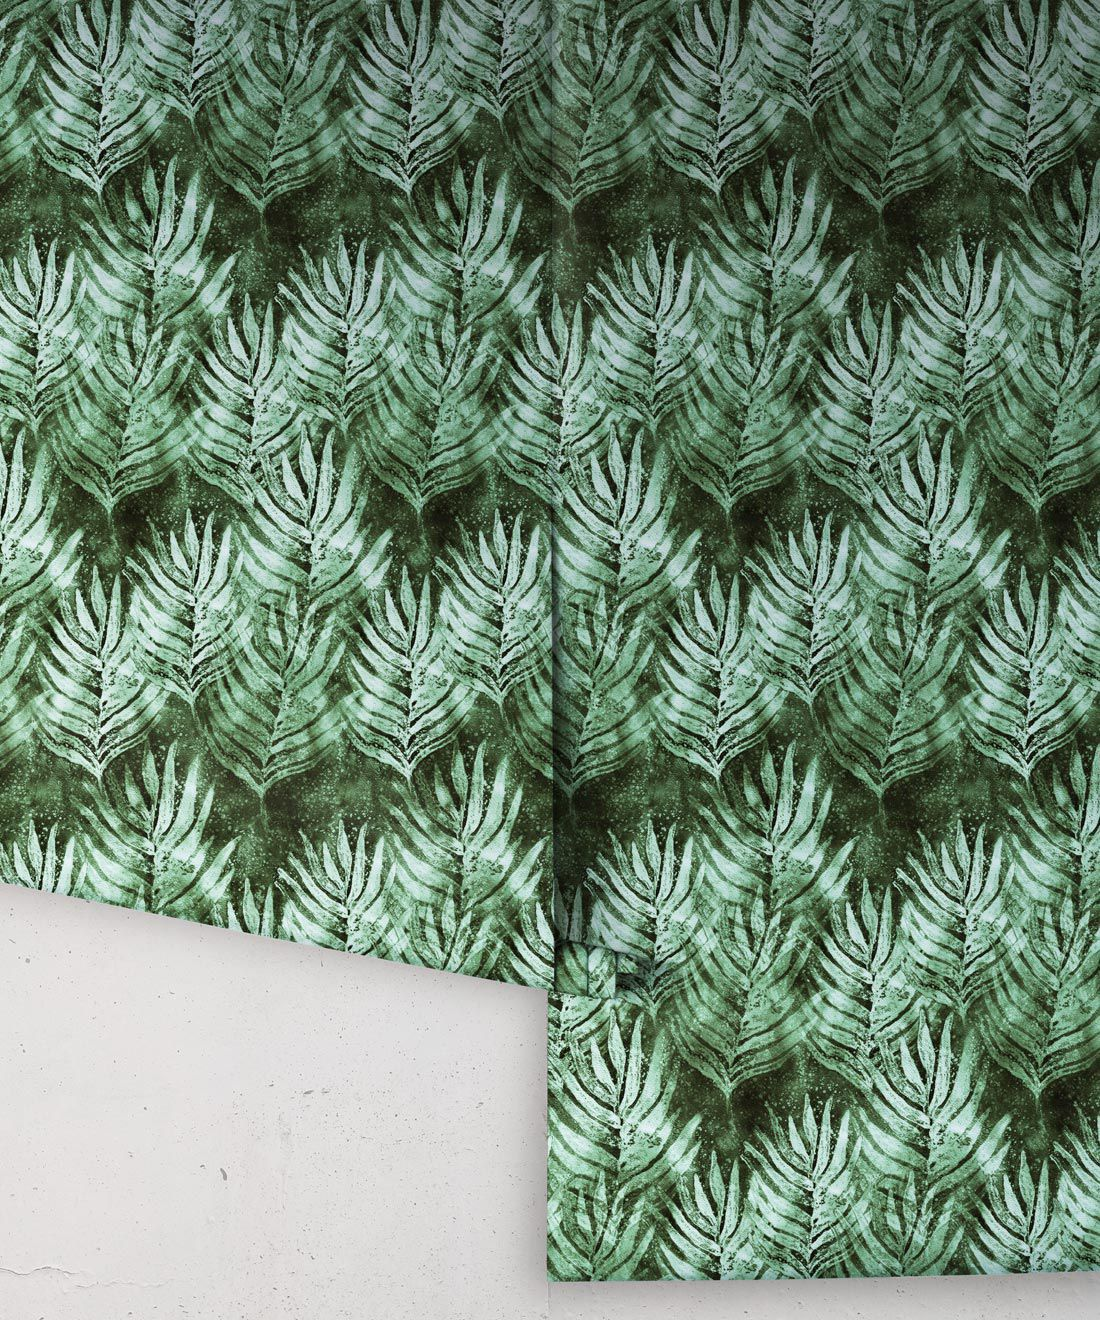 Rainforest Green Shibori Leaf Wallpaper